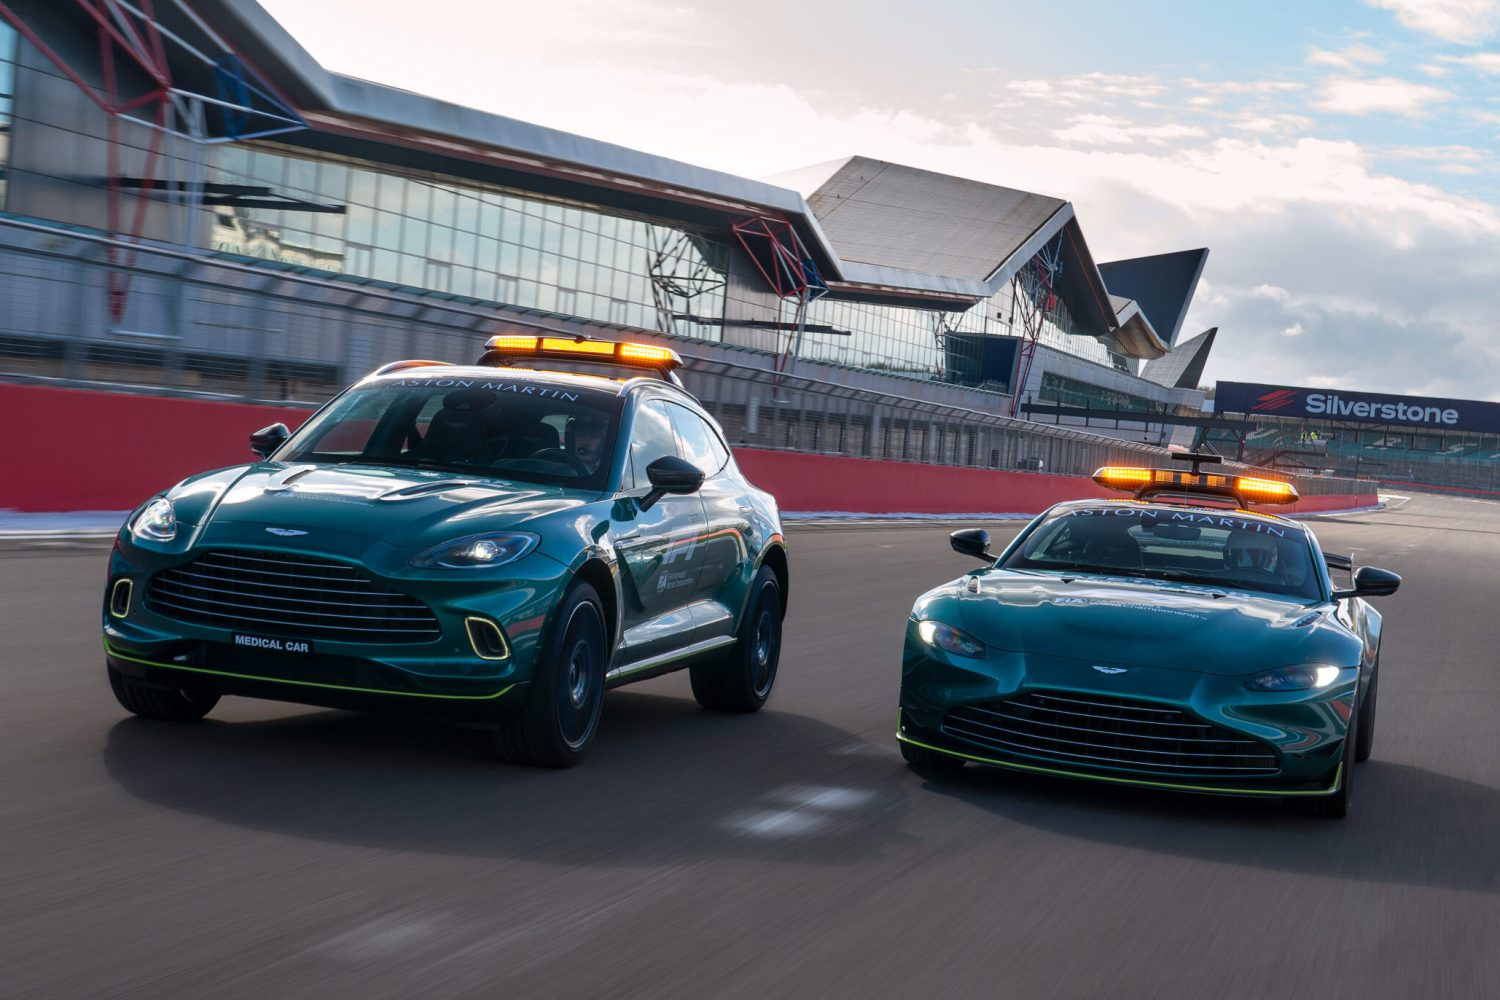 F1 rolls out new Aston Martin Safety and Medical cars